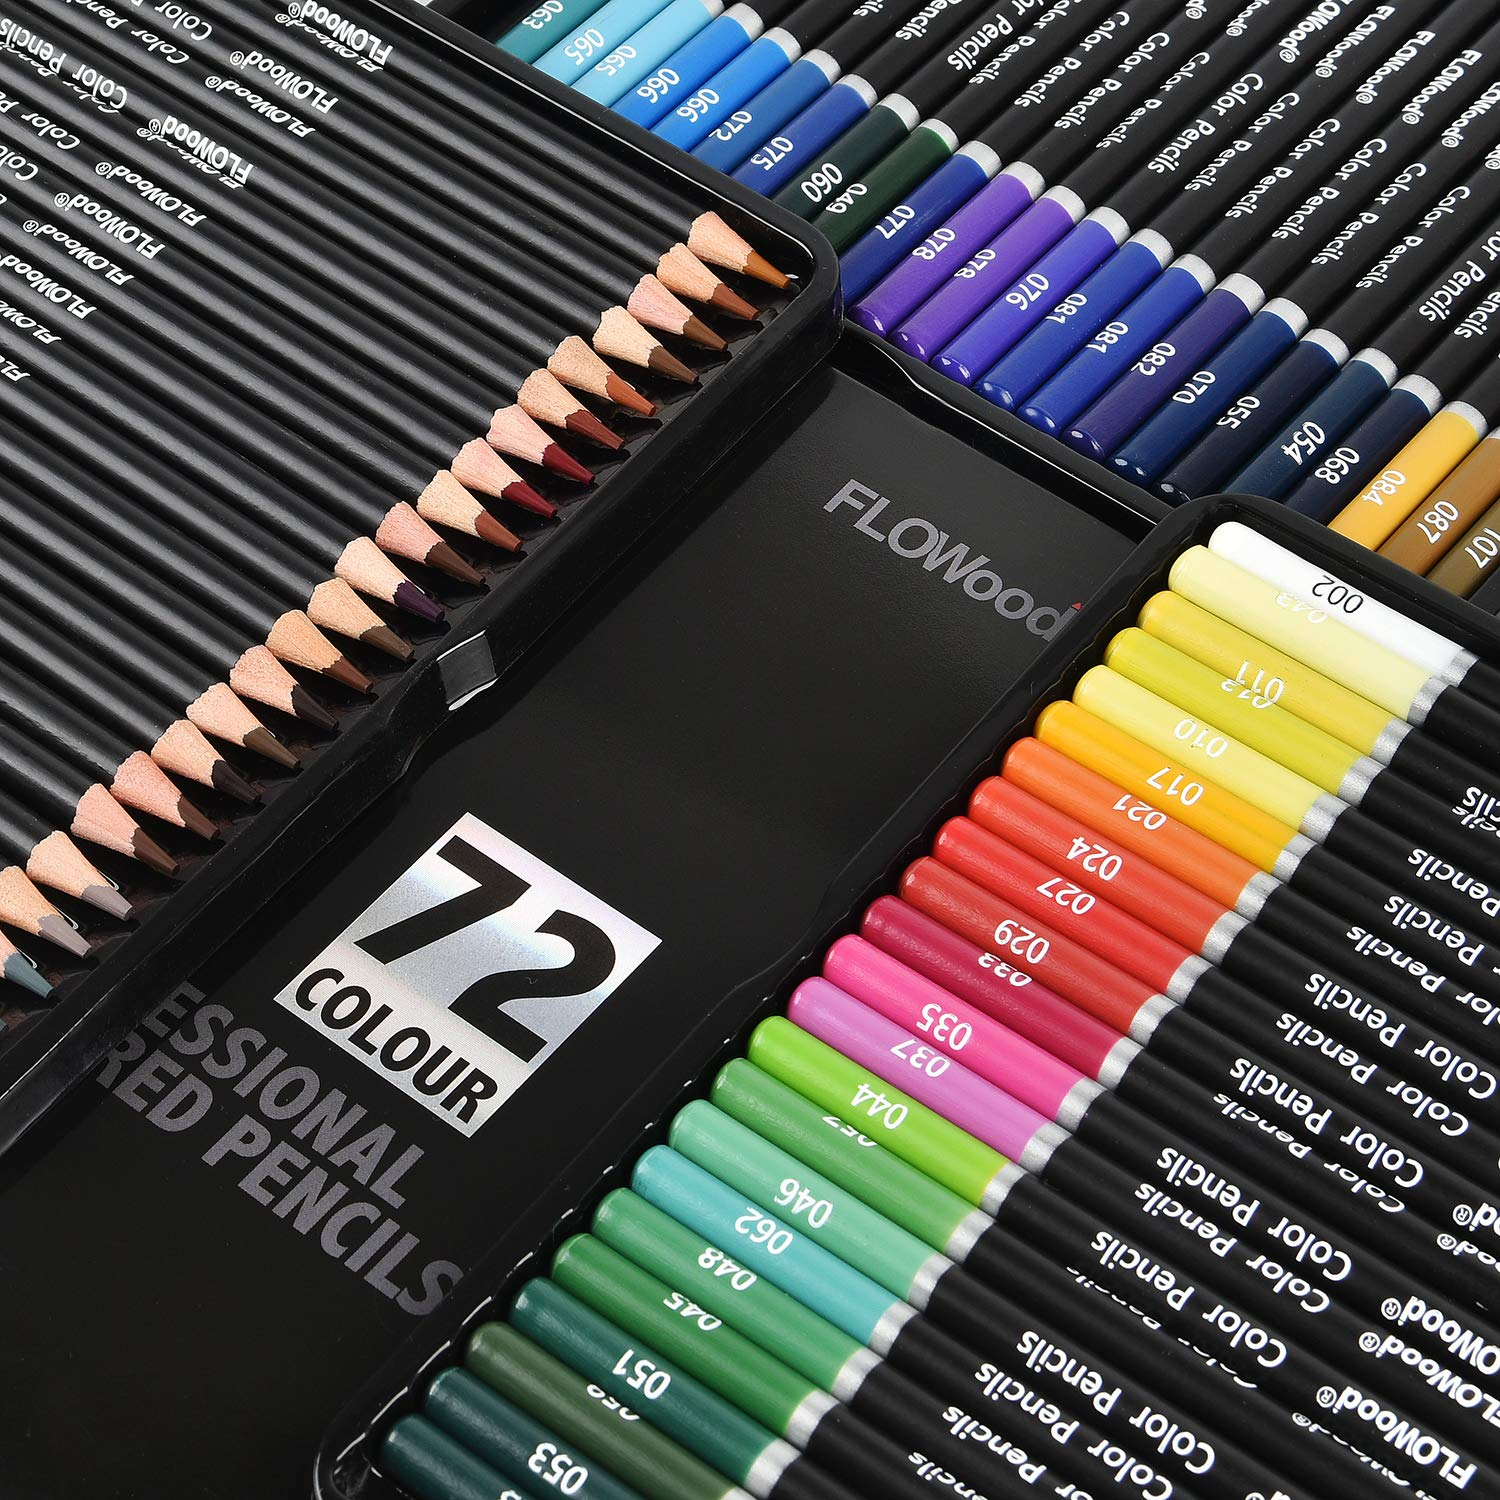 Flowood 72 Colored Pencils Soft Core Drawing Pencils Set Art Supply for Sketch Coloring Books Tin Case by Otdair (Image #4)